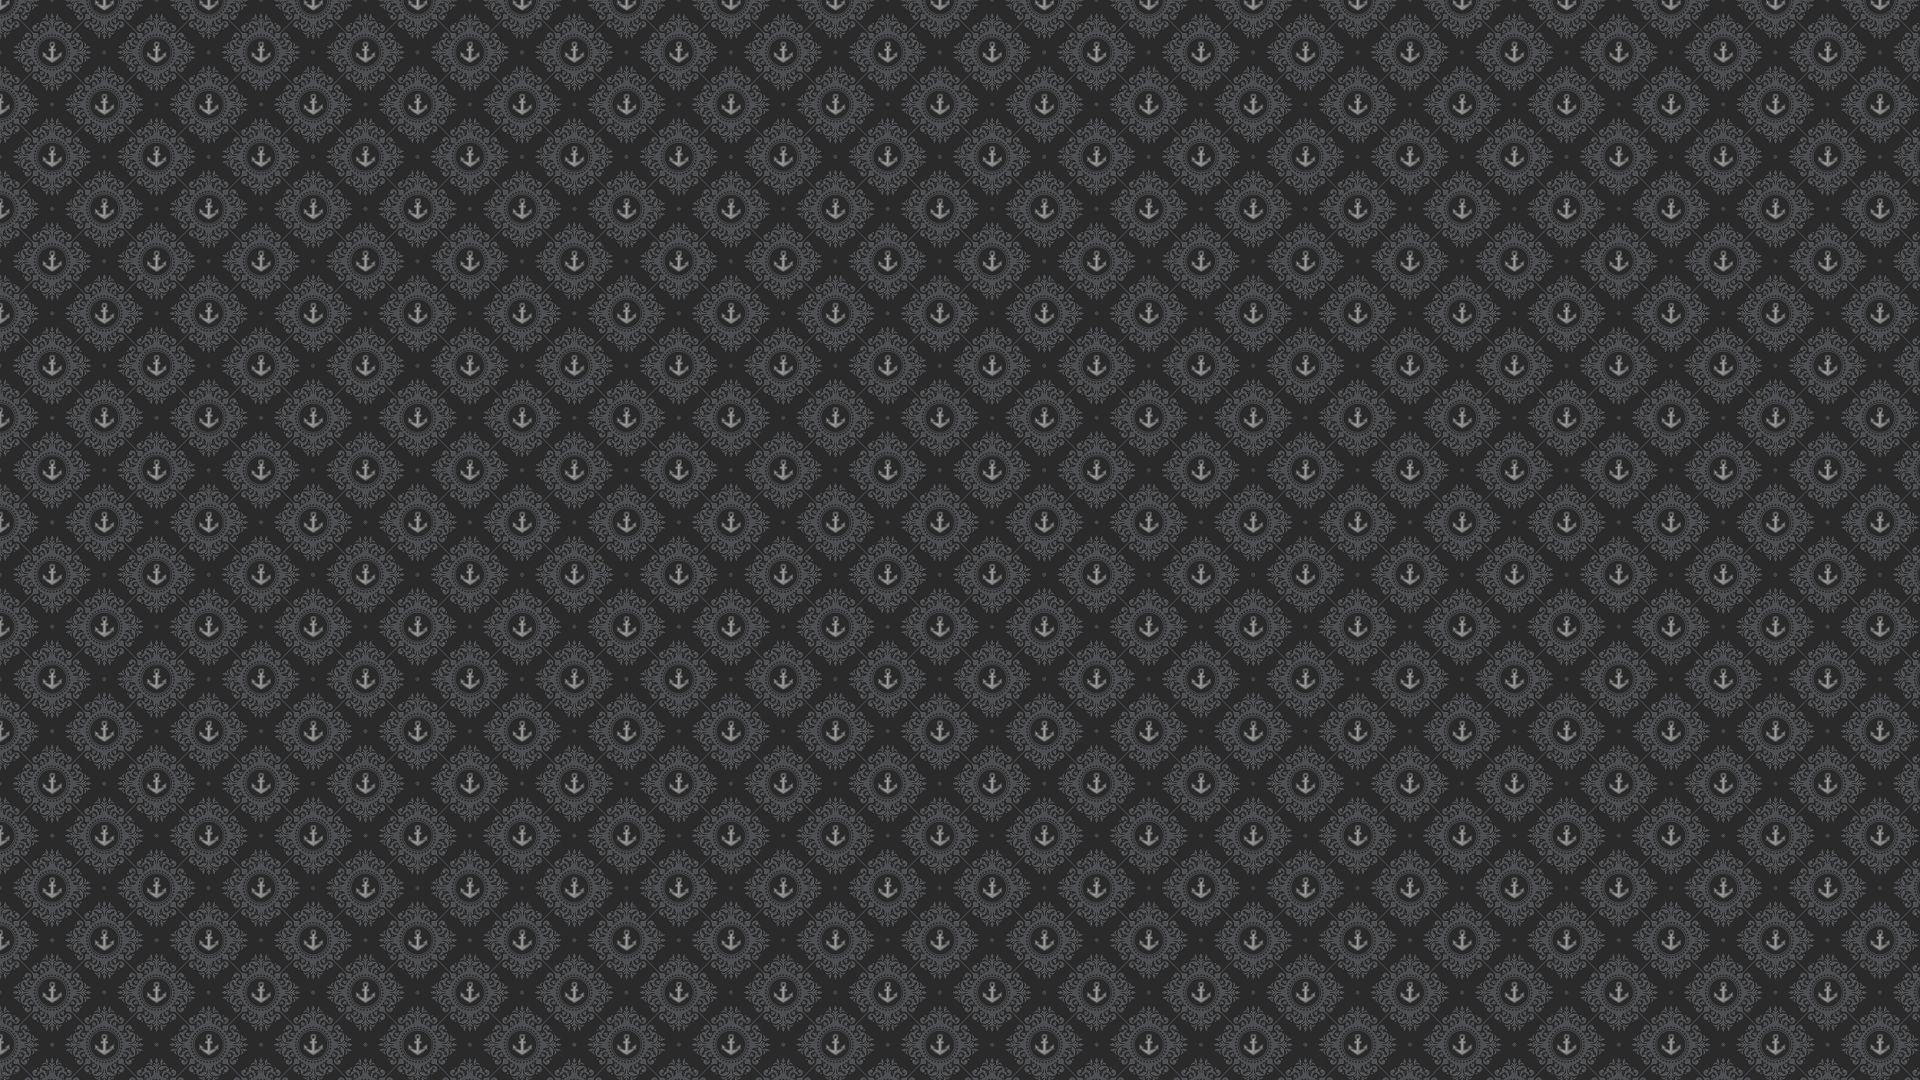 Holographic hd wallpaper for laptop